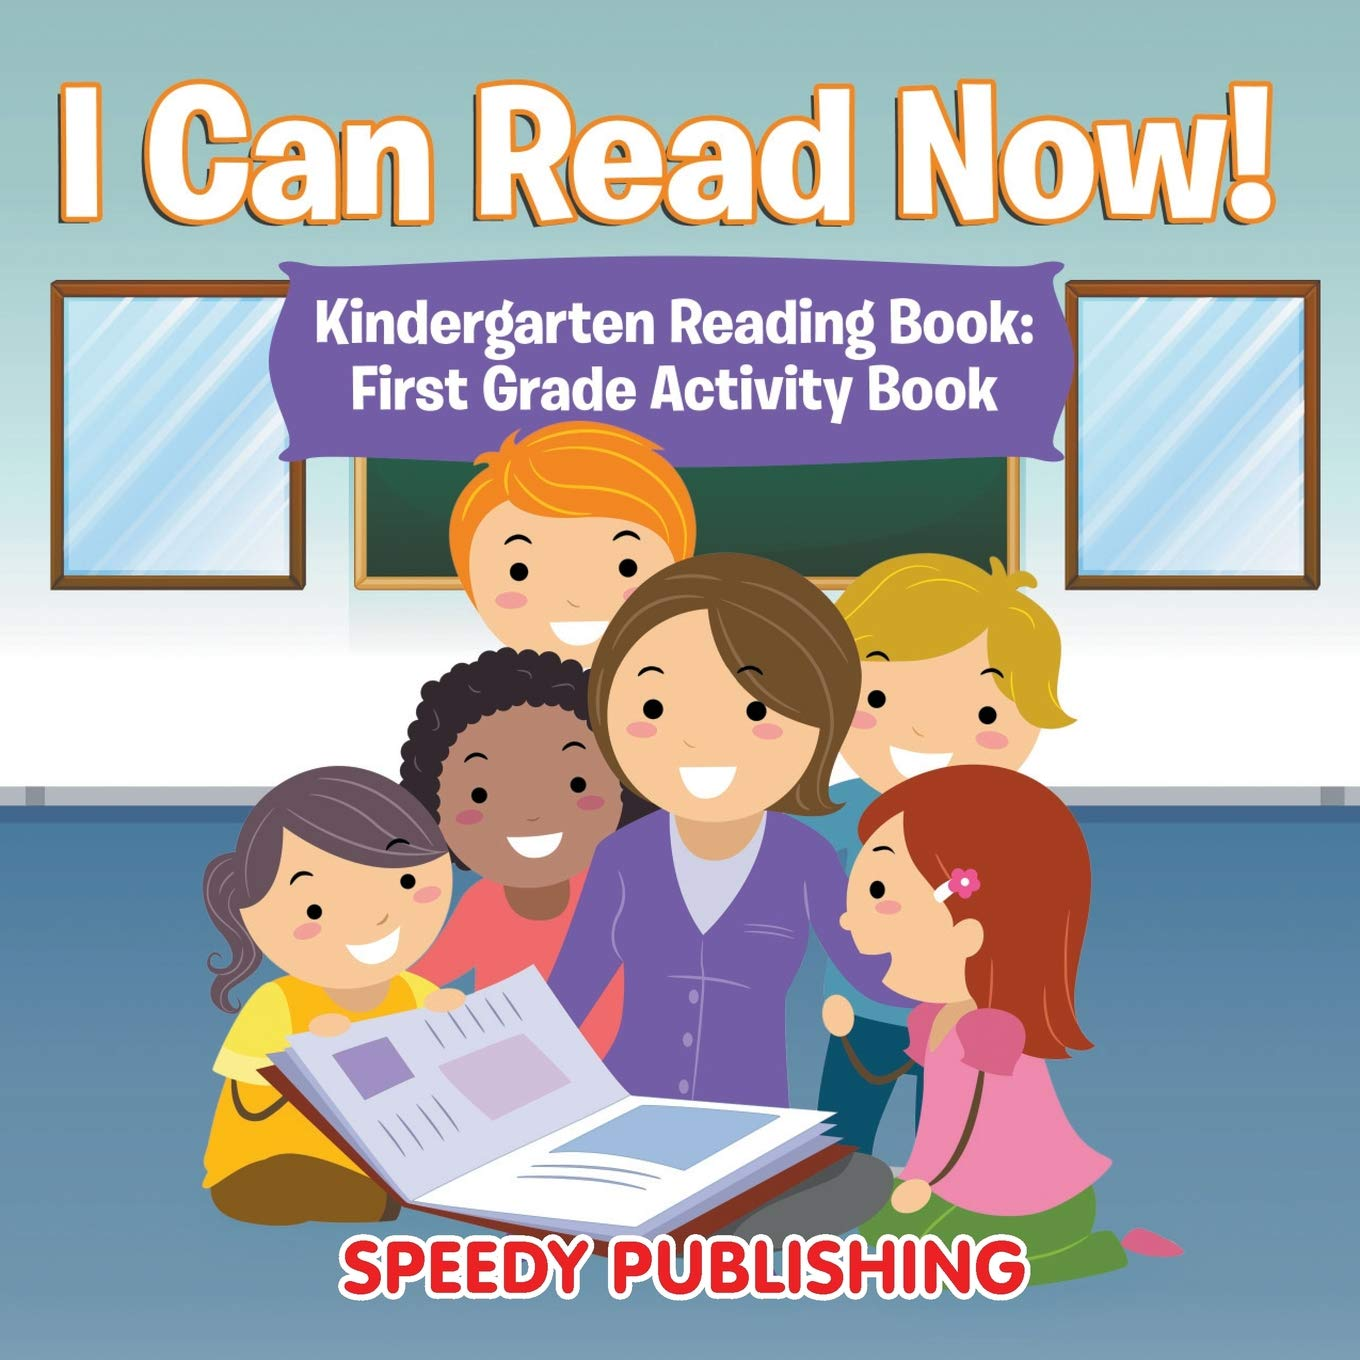 Amazon com: I Can Read Now! Kindergarten Reading Book: First